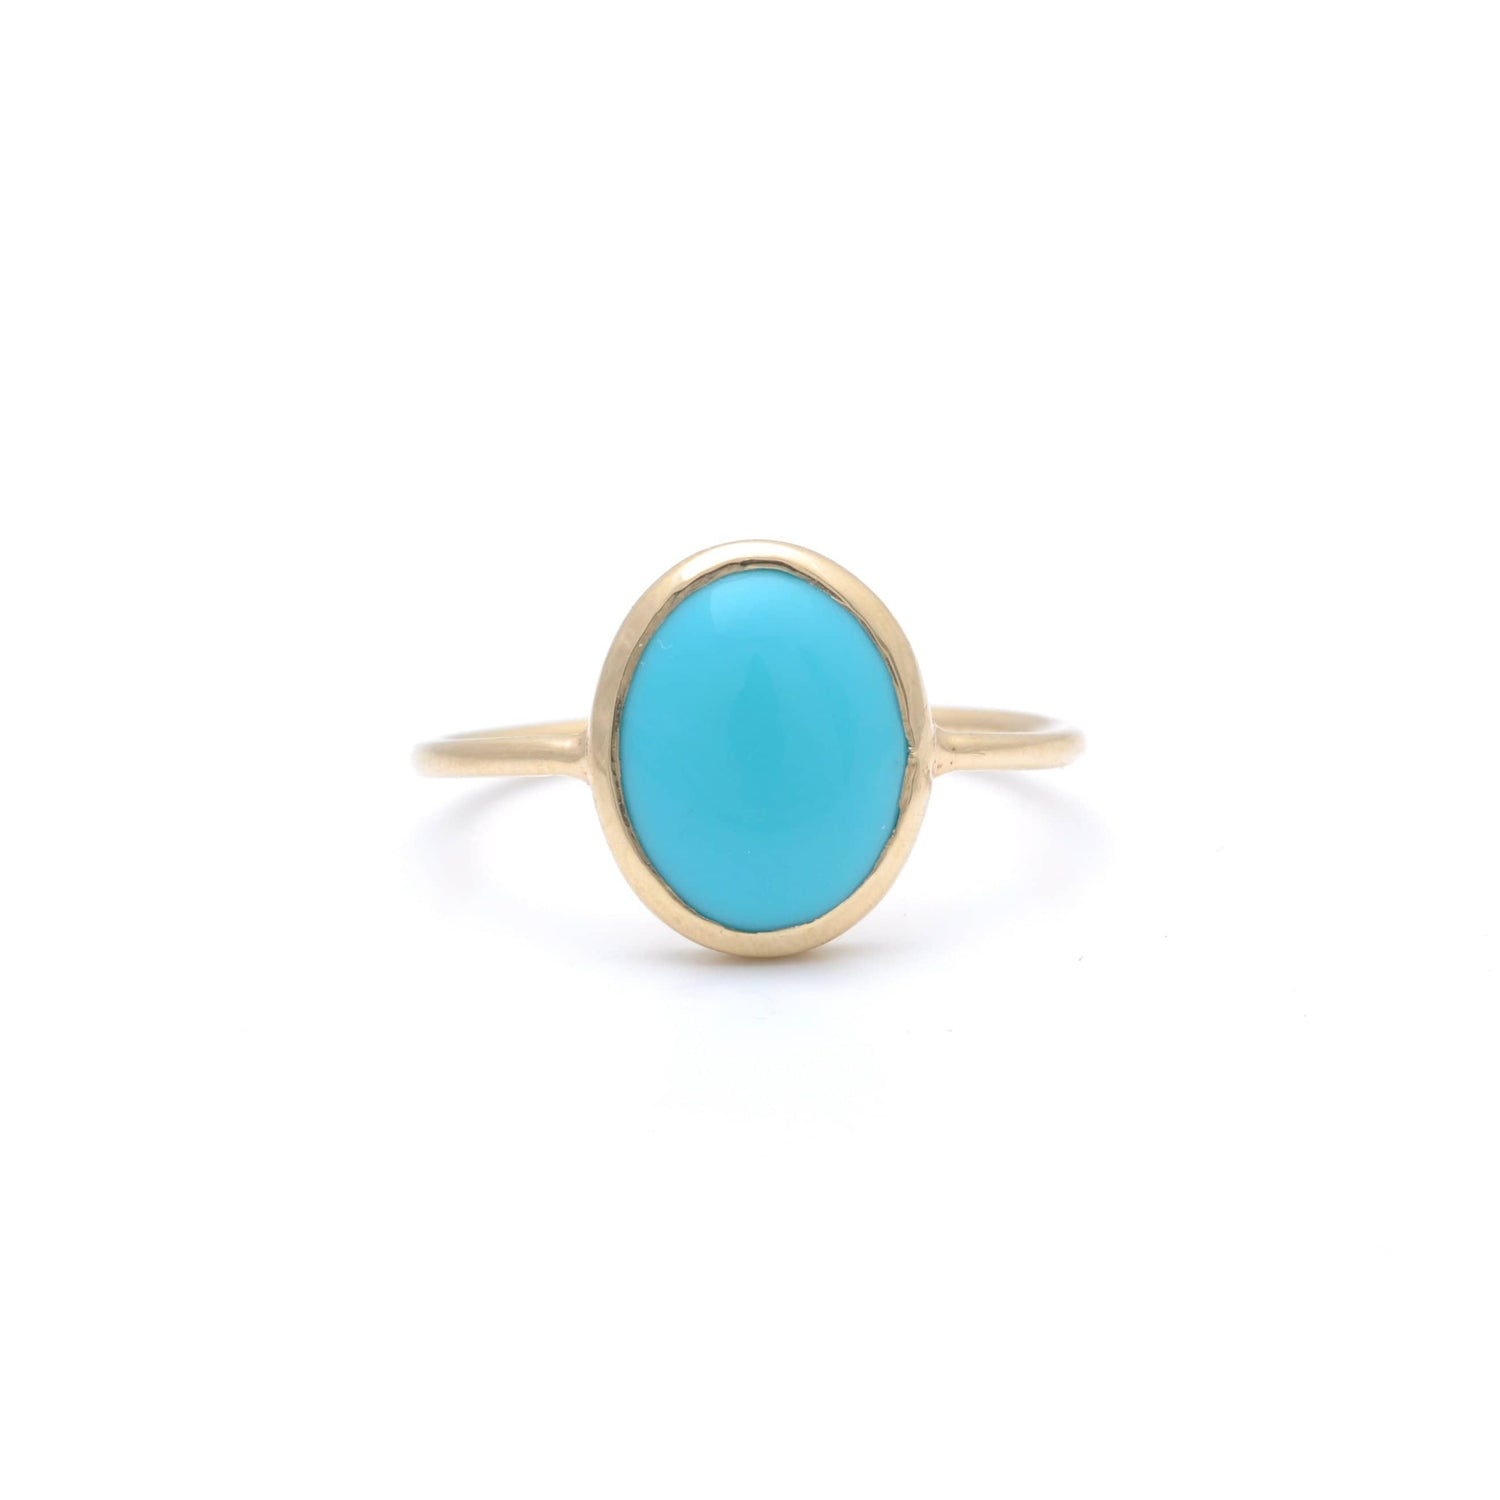 Big Oval Turquoise Cabochon Ring Caitlin nicole